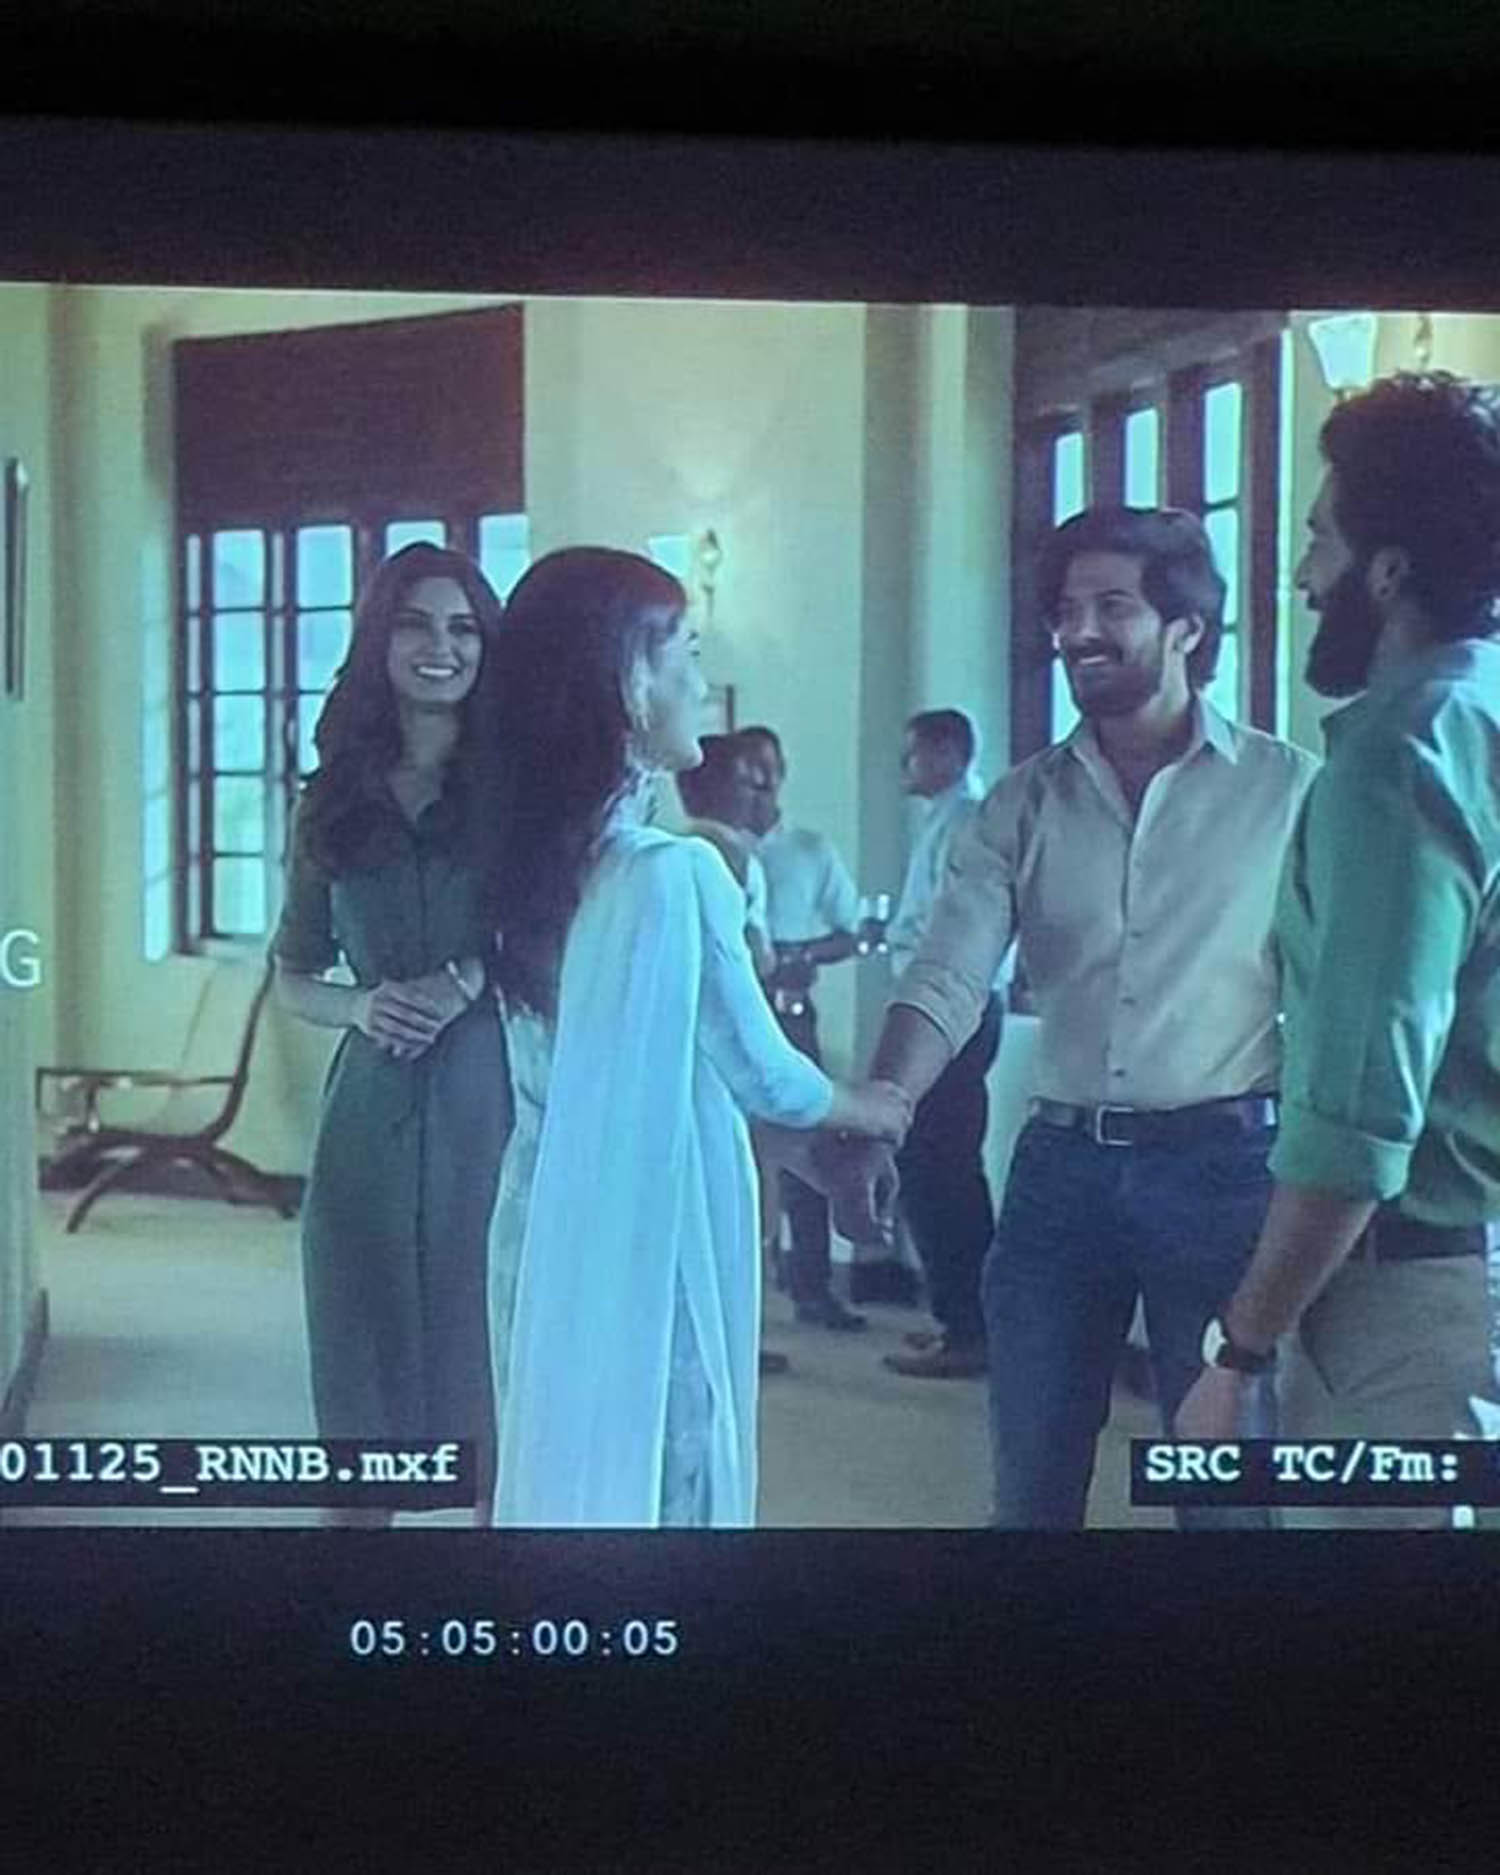 dulquer salmaan's new film salute,rosshan andrrews,salute movie news,salute movie updates,dulquer salmaan salute movie latest news,malayalam cinema news,mollywood latest film news;